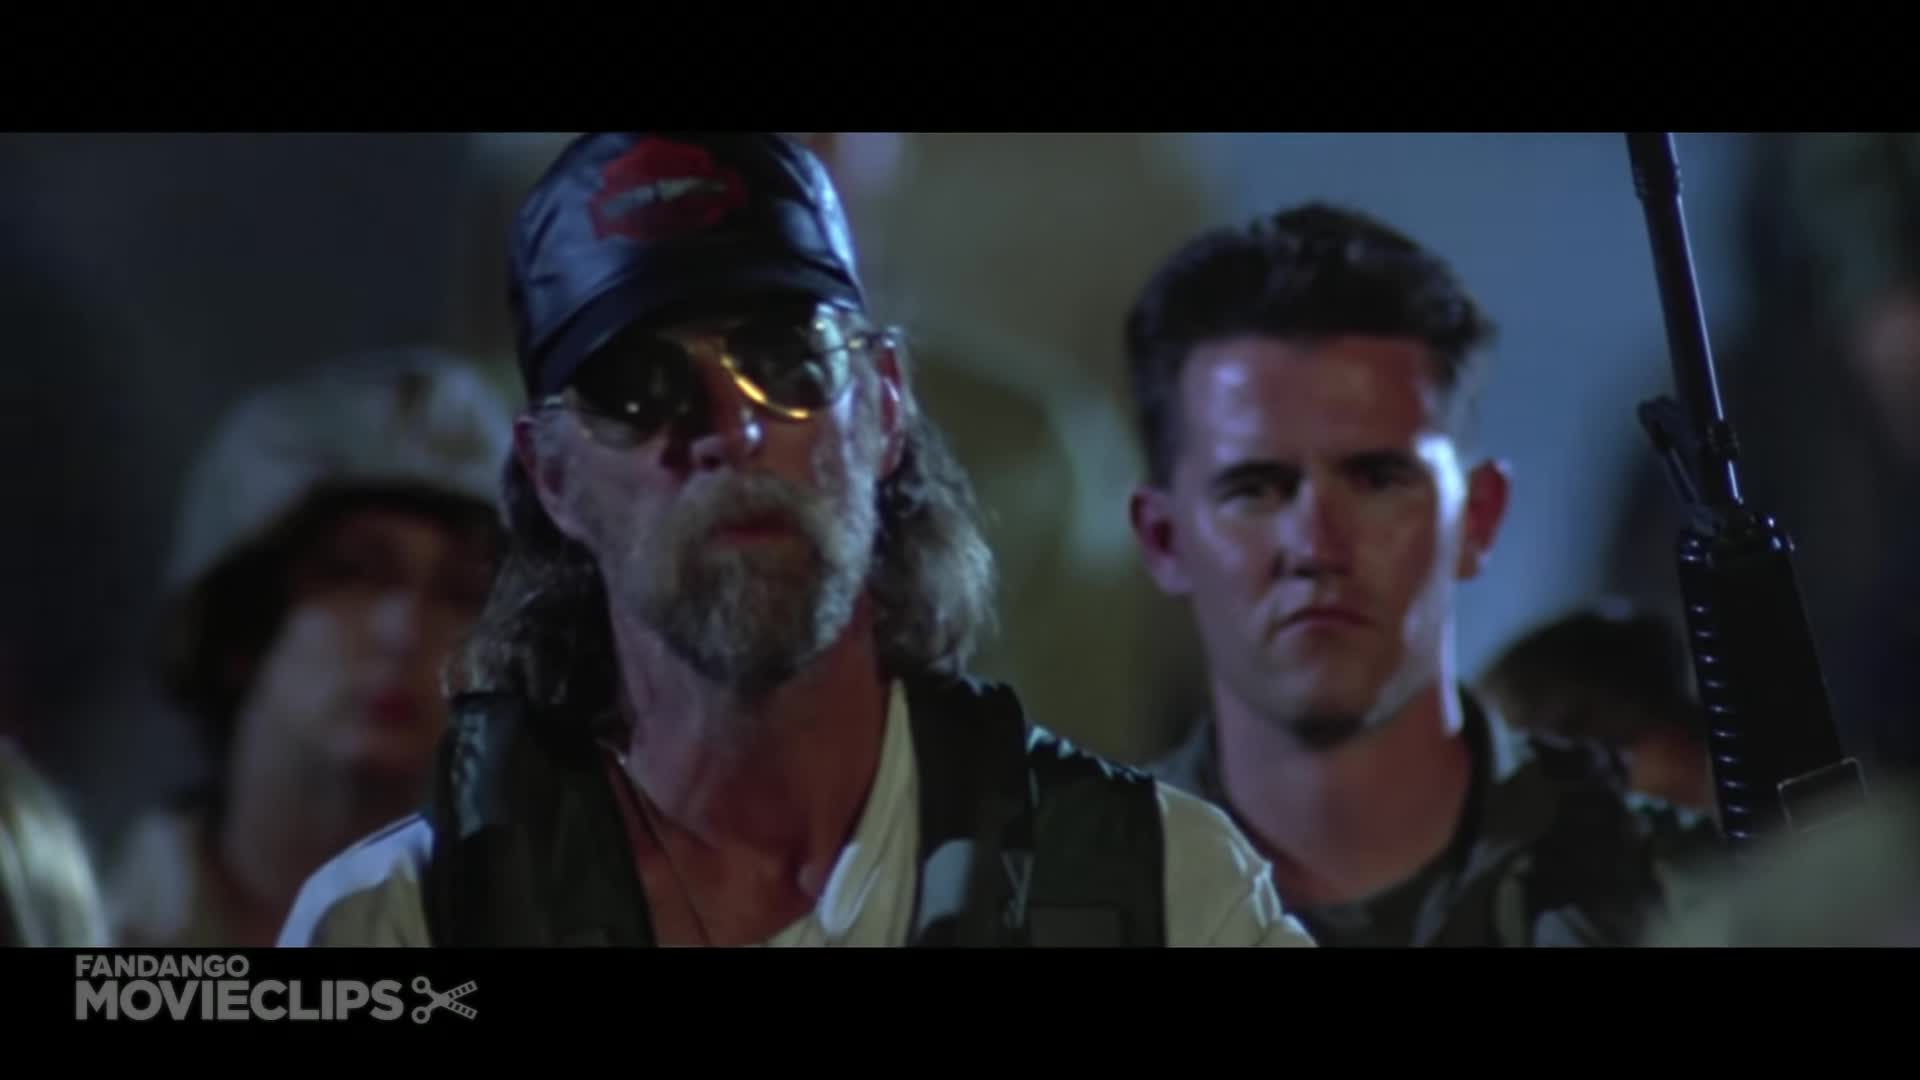 action sci-fi fantasy, alicia casse, bill pullman, celebs, giuseppe andrews, independence day, independence day 2, independence day full movie, independence day trailer, lisa jakub, microphone videos, randy quaid, Independence Day (4/5) Movie CLIP - The President's Speech (1996) HD GIFs